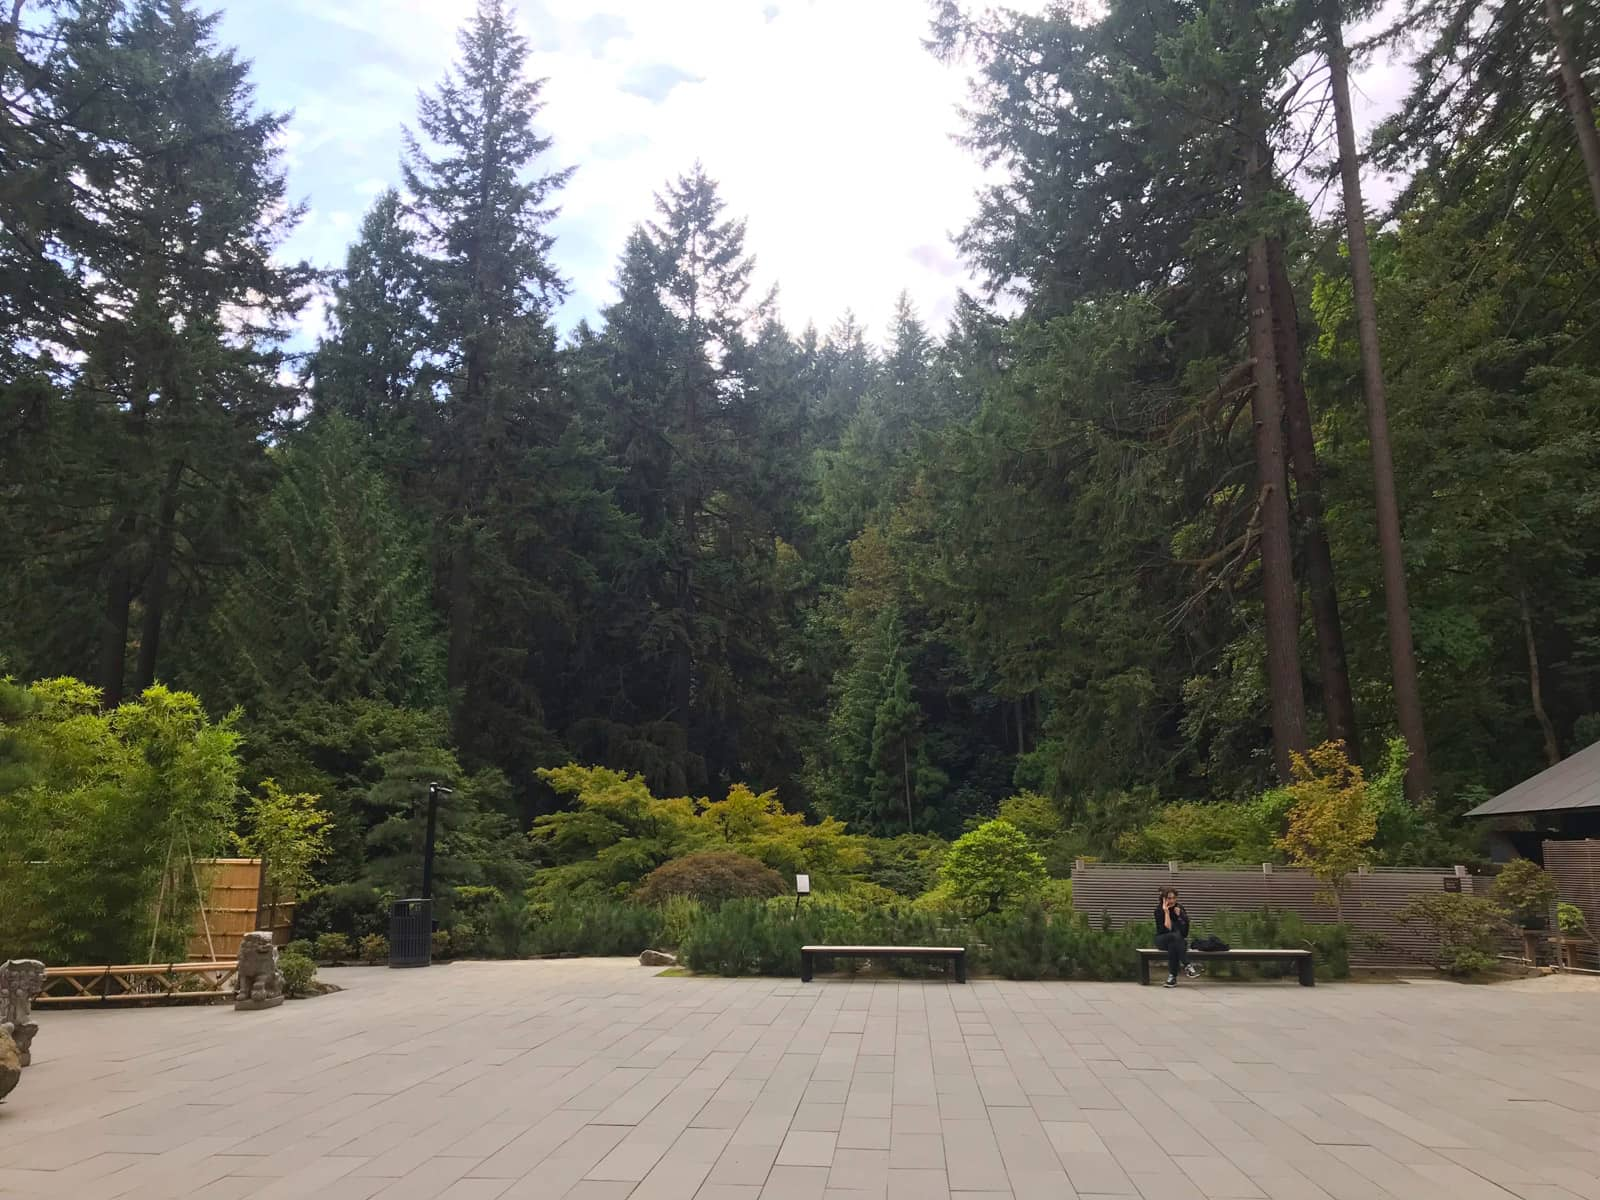 An open paved area with a forest in the background. At the edge of the paved area are a couple of benches. A woman is sitting on one of them and appears to be on the phone.